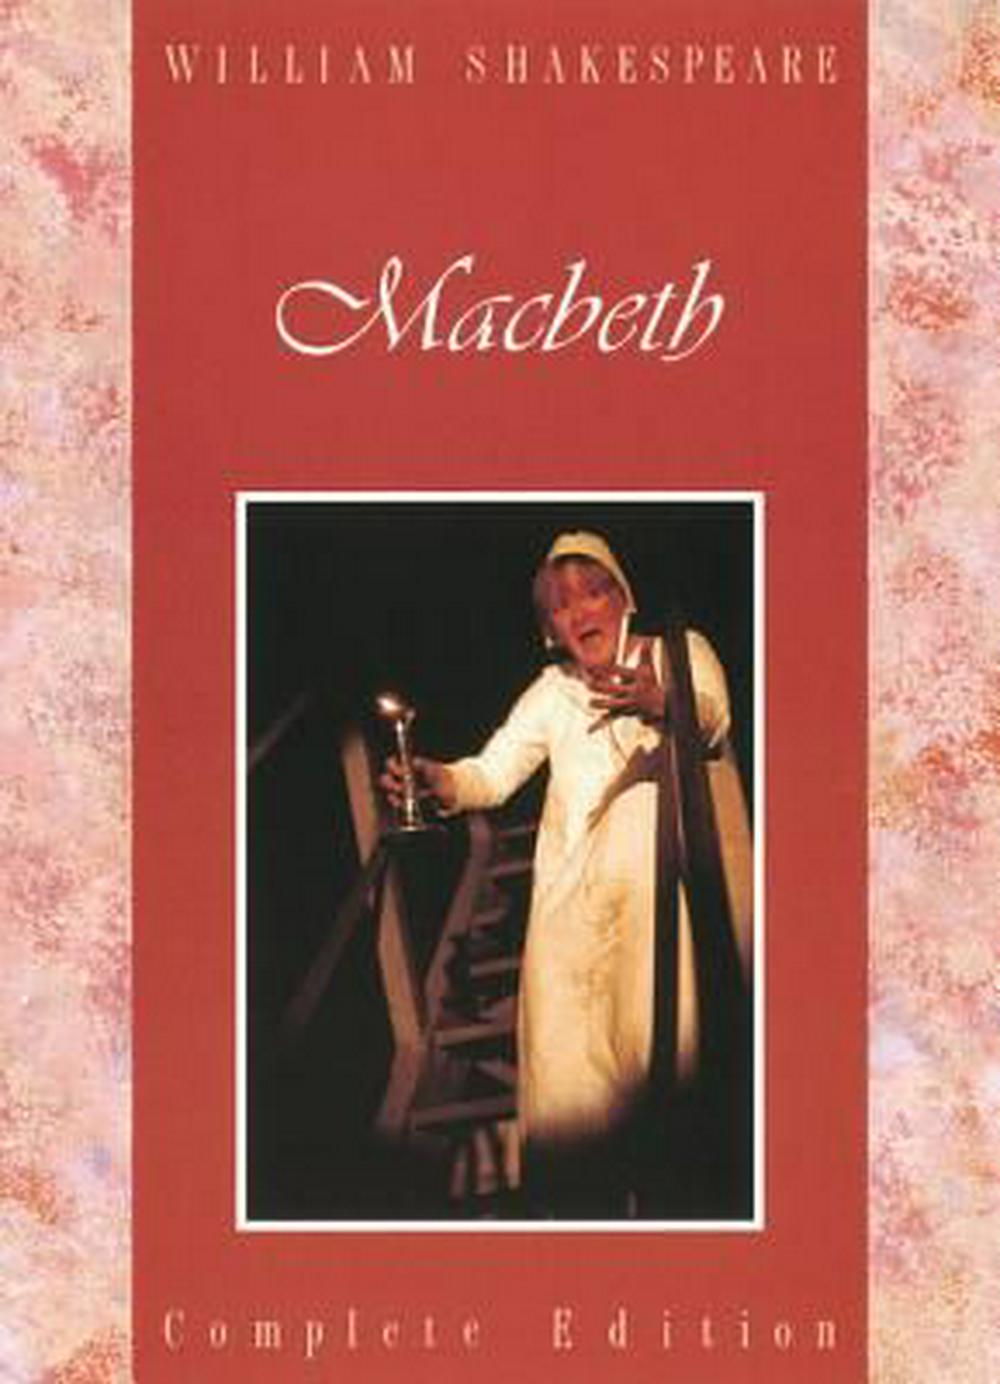 Macbeth by William Shakespeare, ISBN: 9780521786584